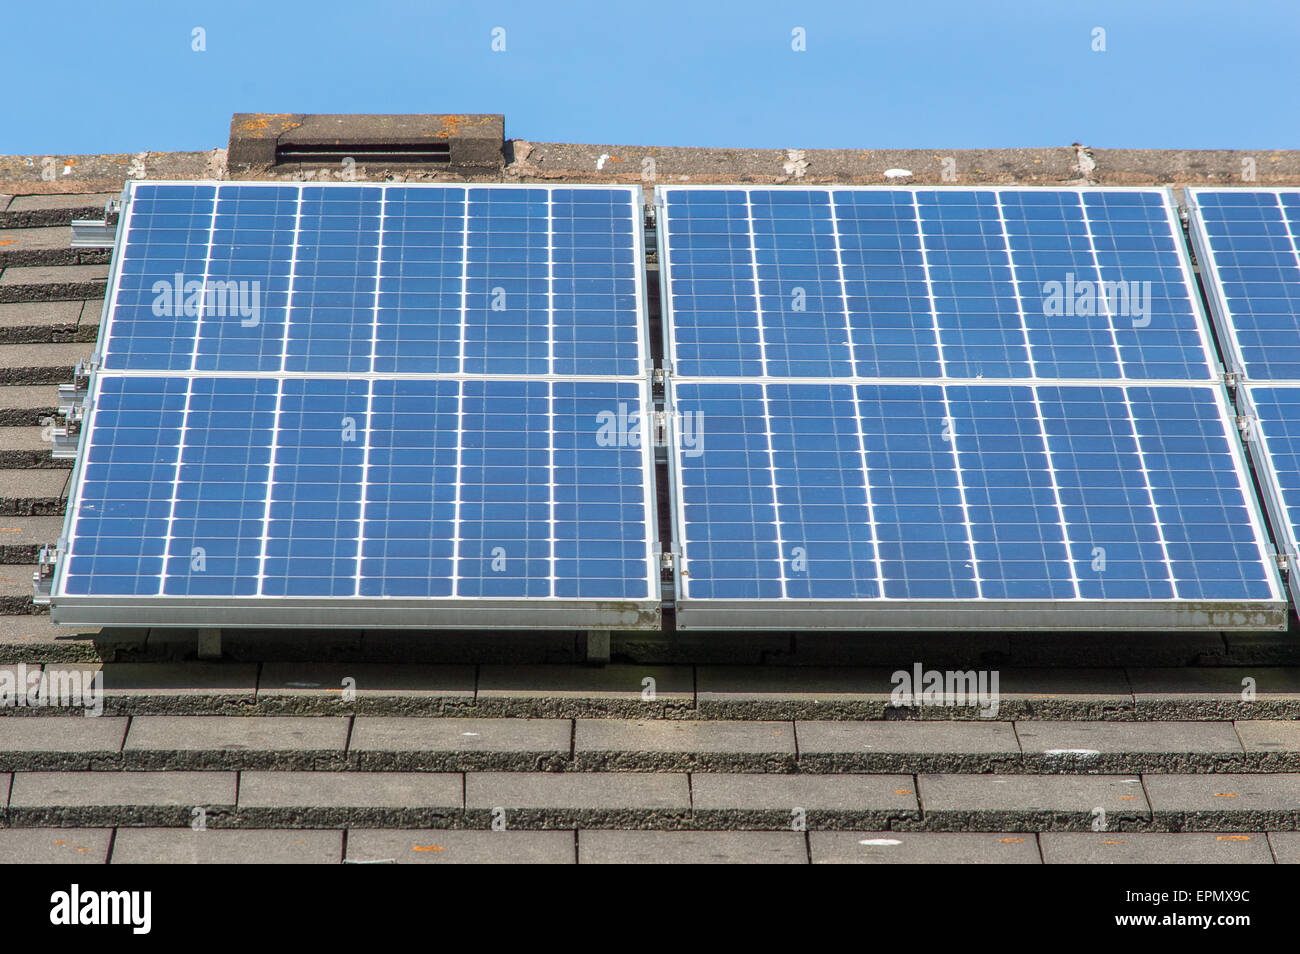 solar panels on a roof on a sunny day - Stock Image